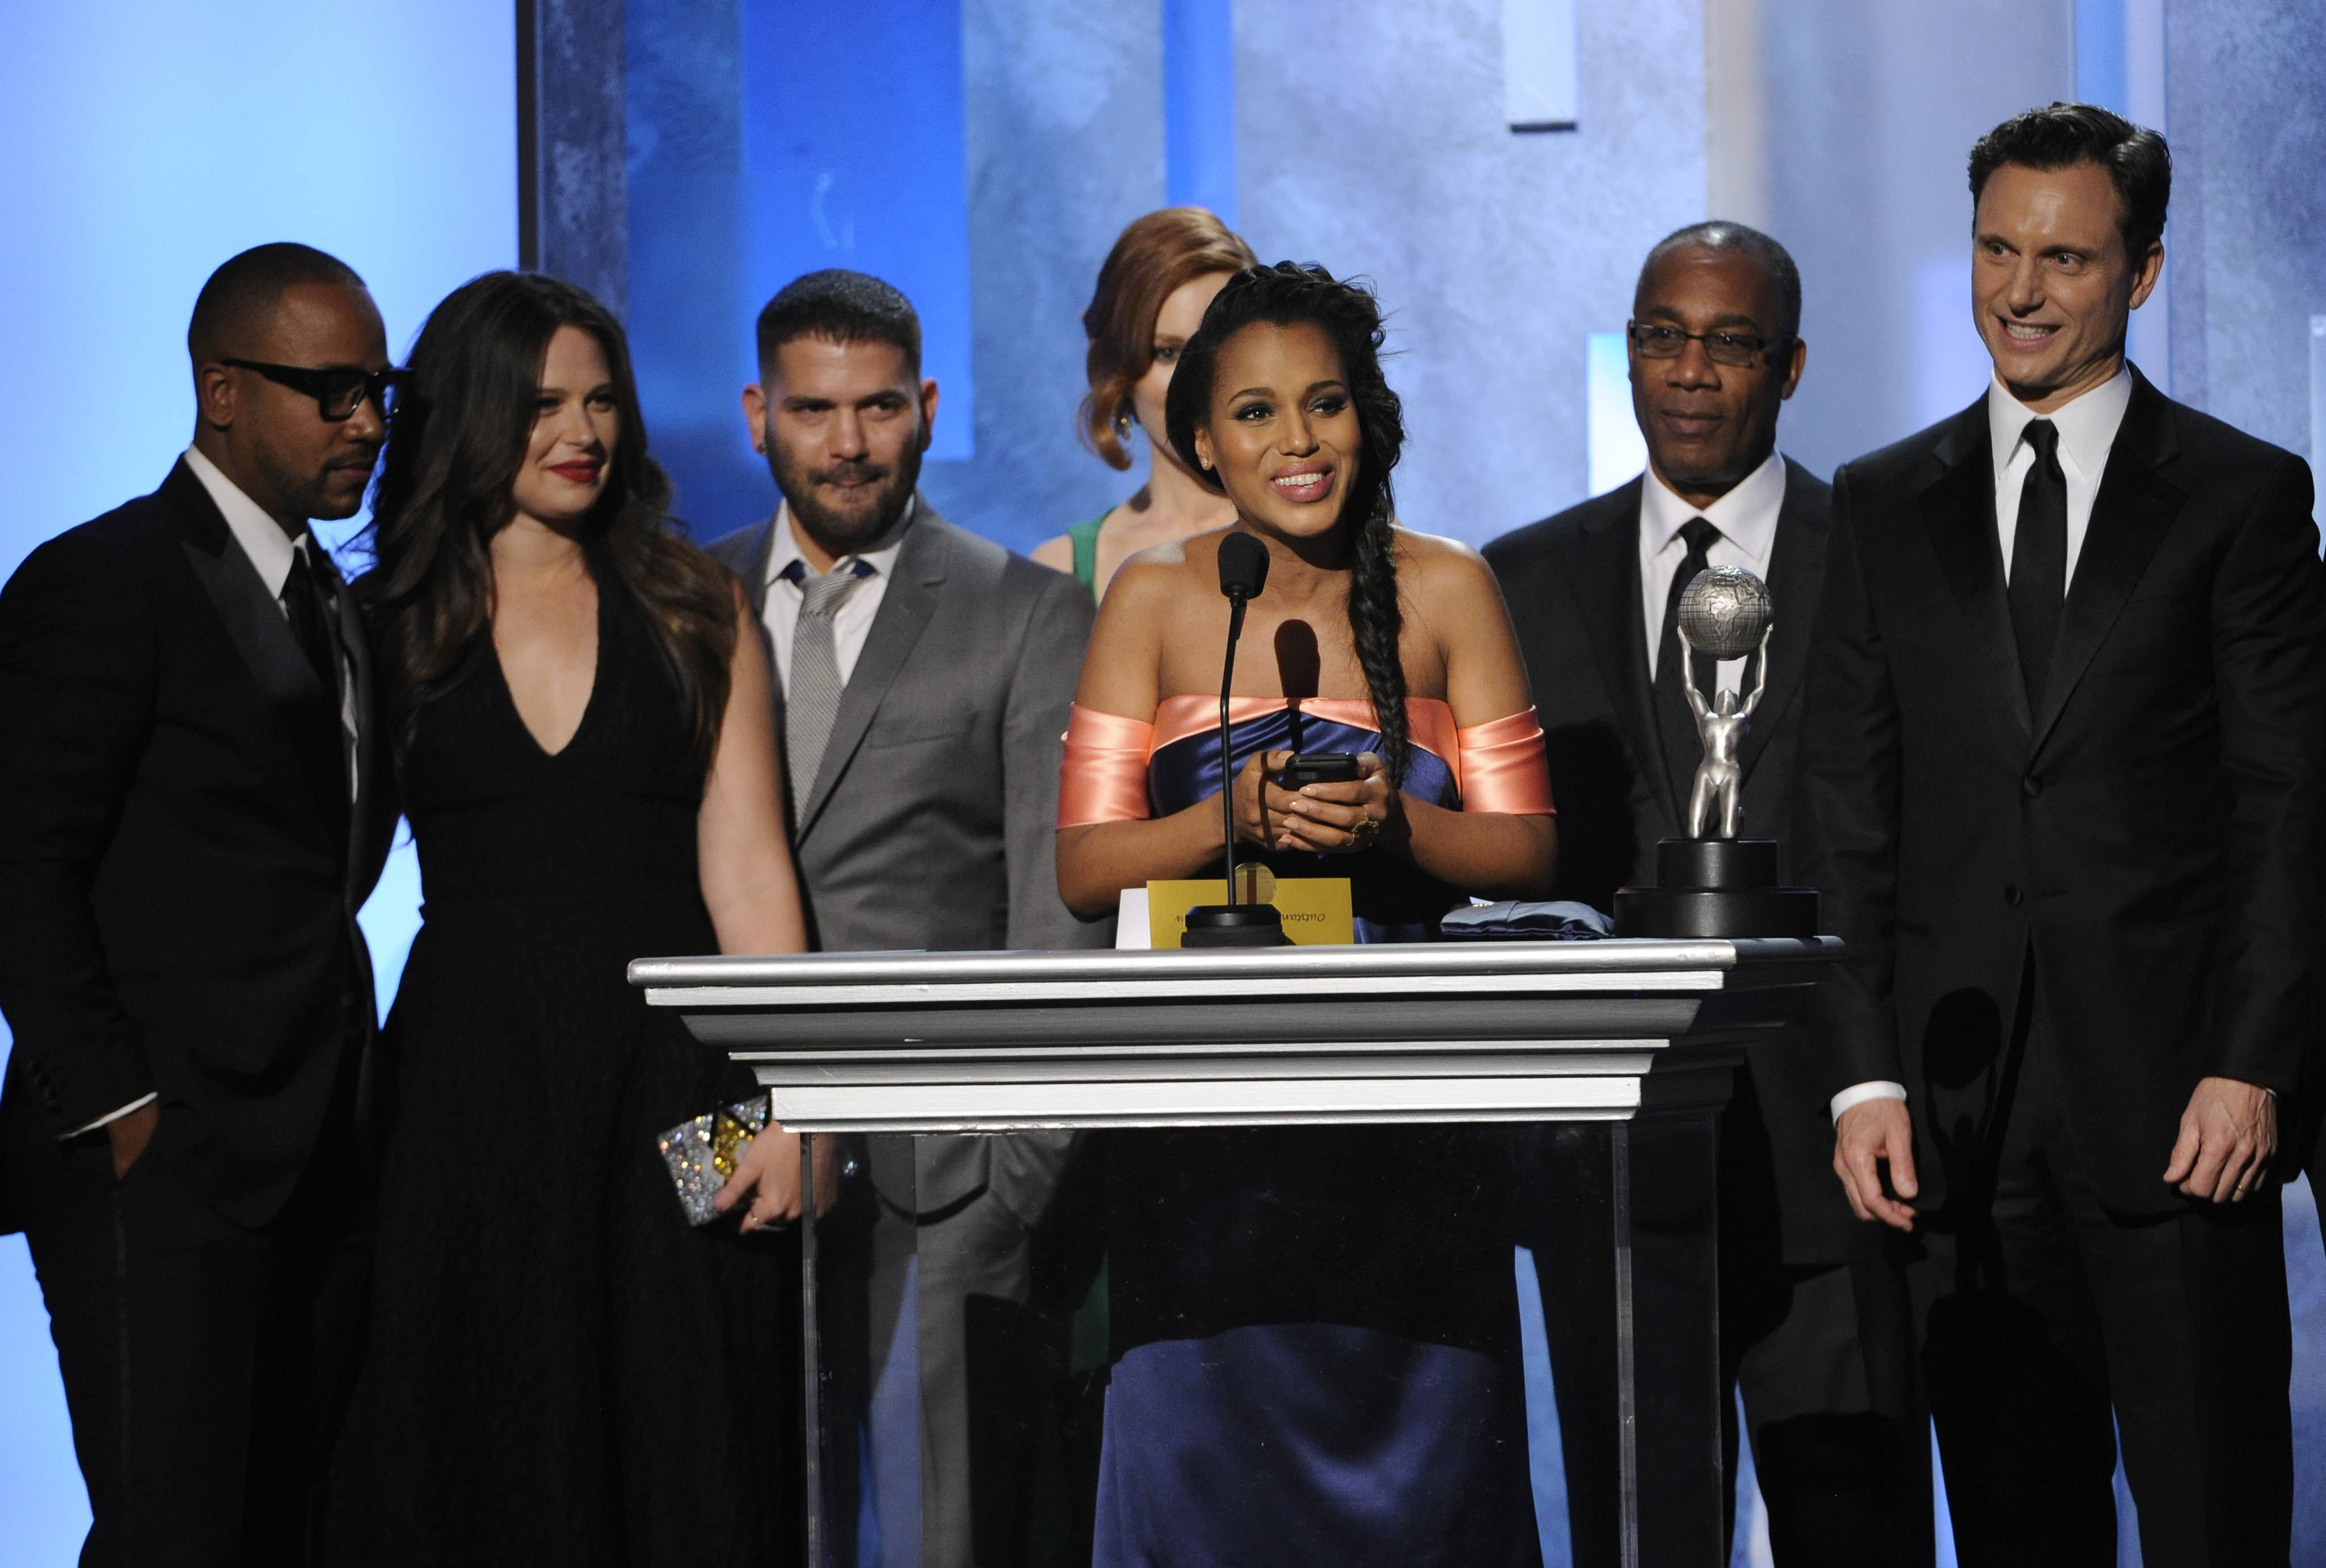 "From left, Columbus Short, Katie Lowes, Guillermo Díaz, Darby Stanchfield, Kerry Washington, Joe Morton, and Tony Goldwyn accept the award for outstanding drama series for ""Scandal"" at the 45th NAACP Image Awards at the Pasadena Civic Auditorium on Saturday in Pasadena, Calif."